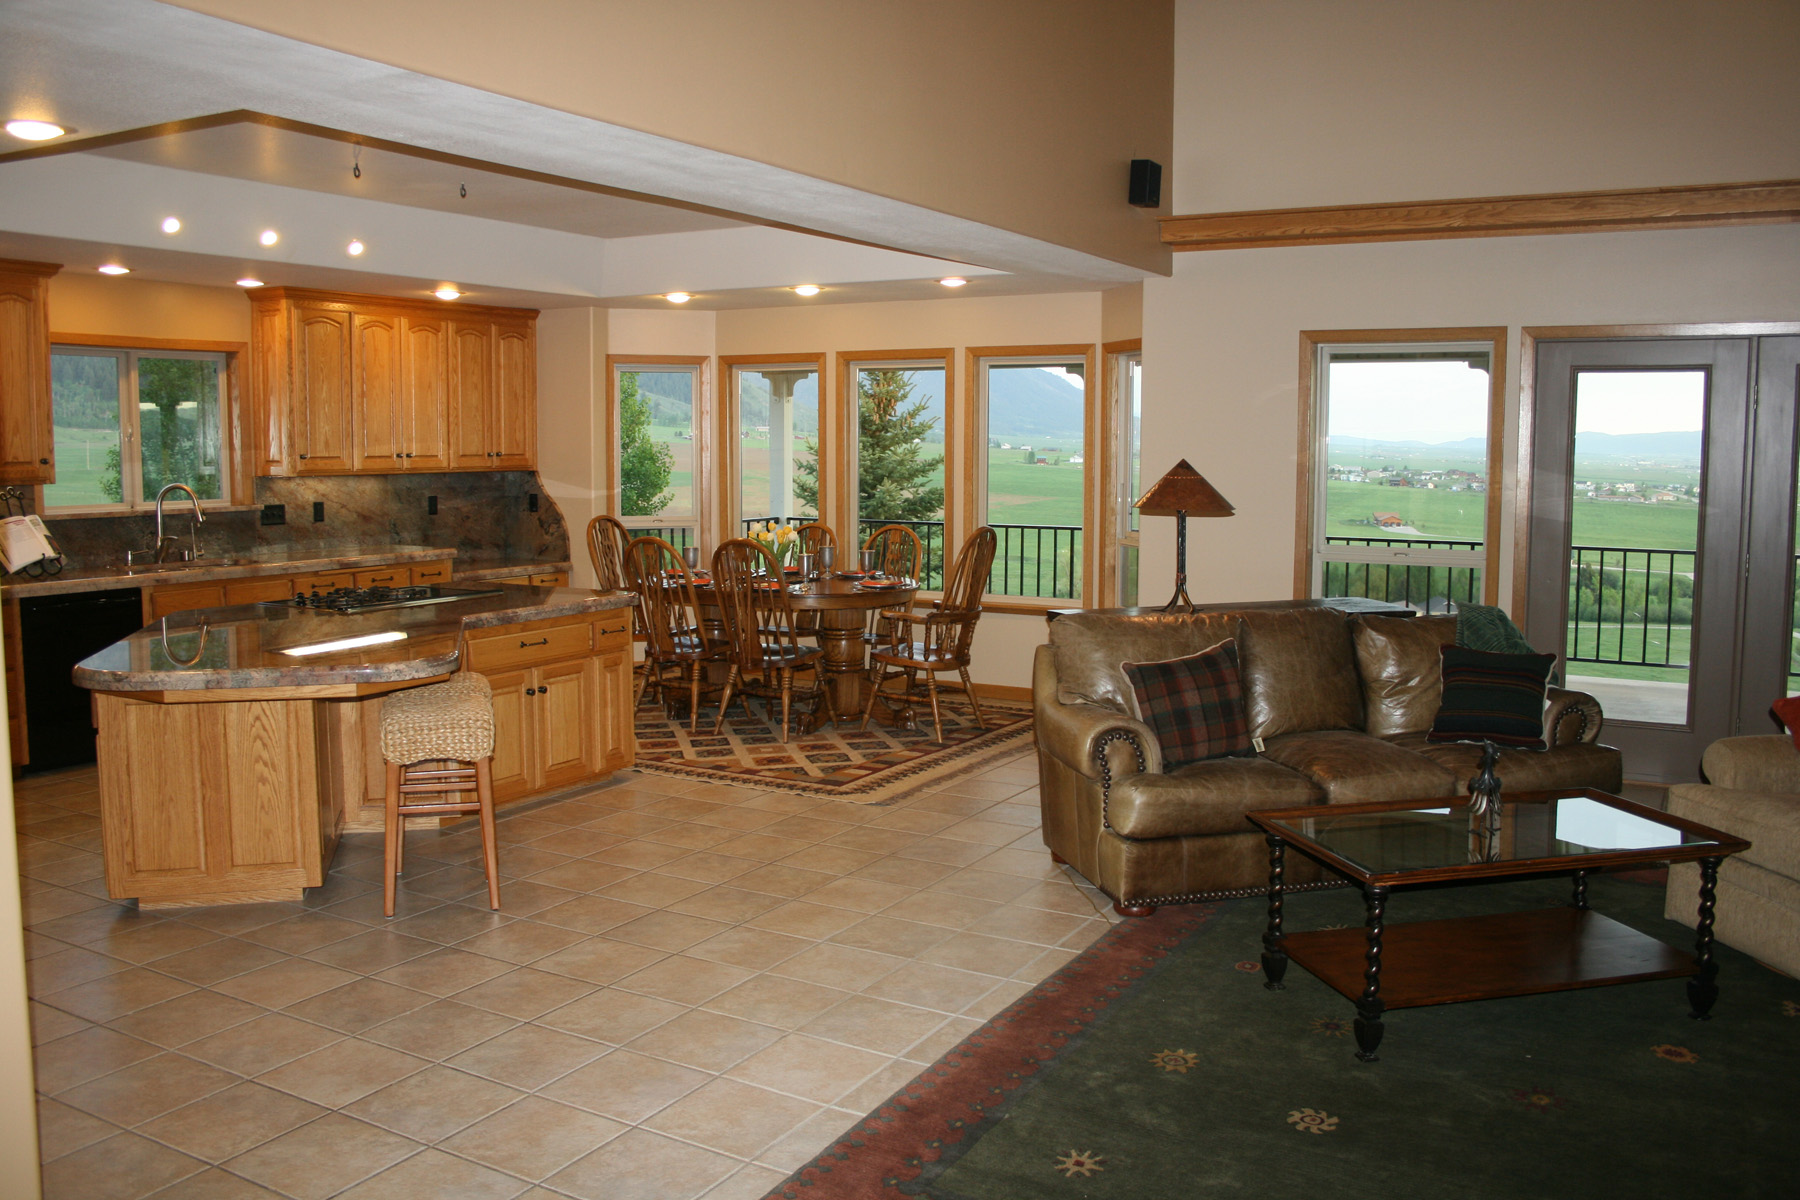 Casa Unifamiliar por un Venta en Star Valley Retreat 1546 Stewart Trail Alpine, Wyoming 83128 Estados Unidos